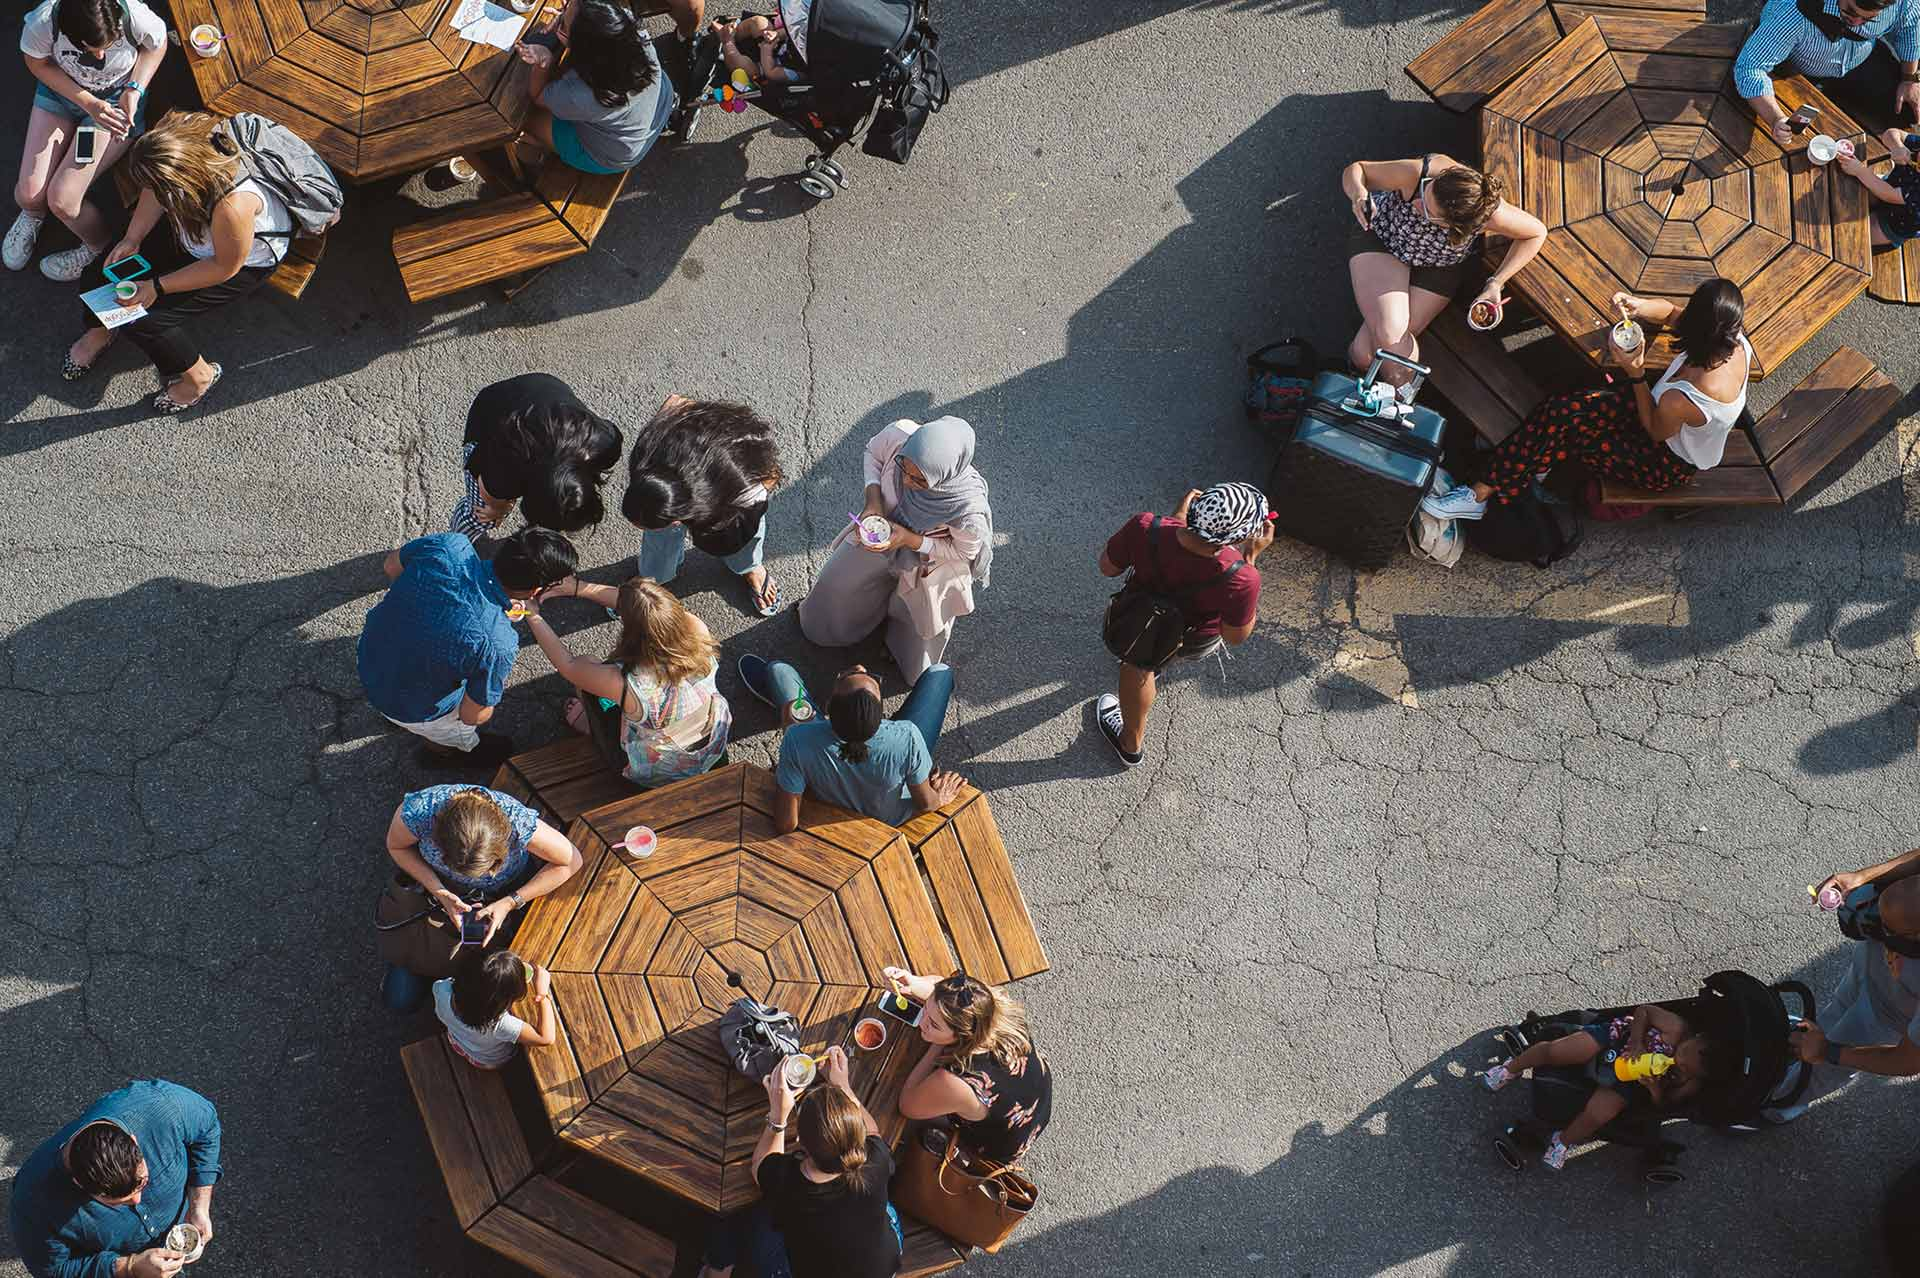 view from above of people dining outside at three round tables